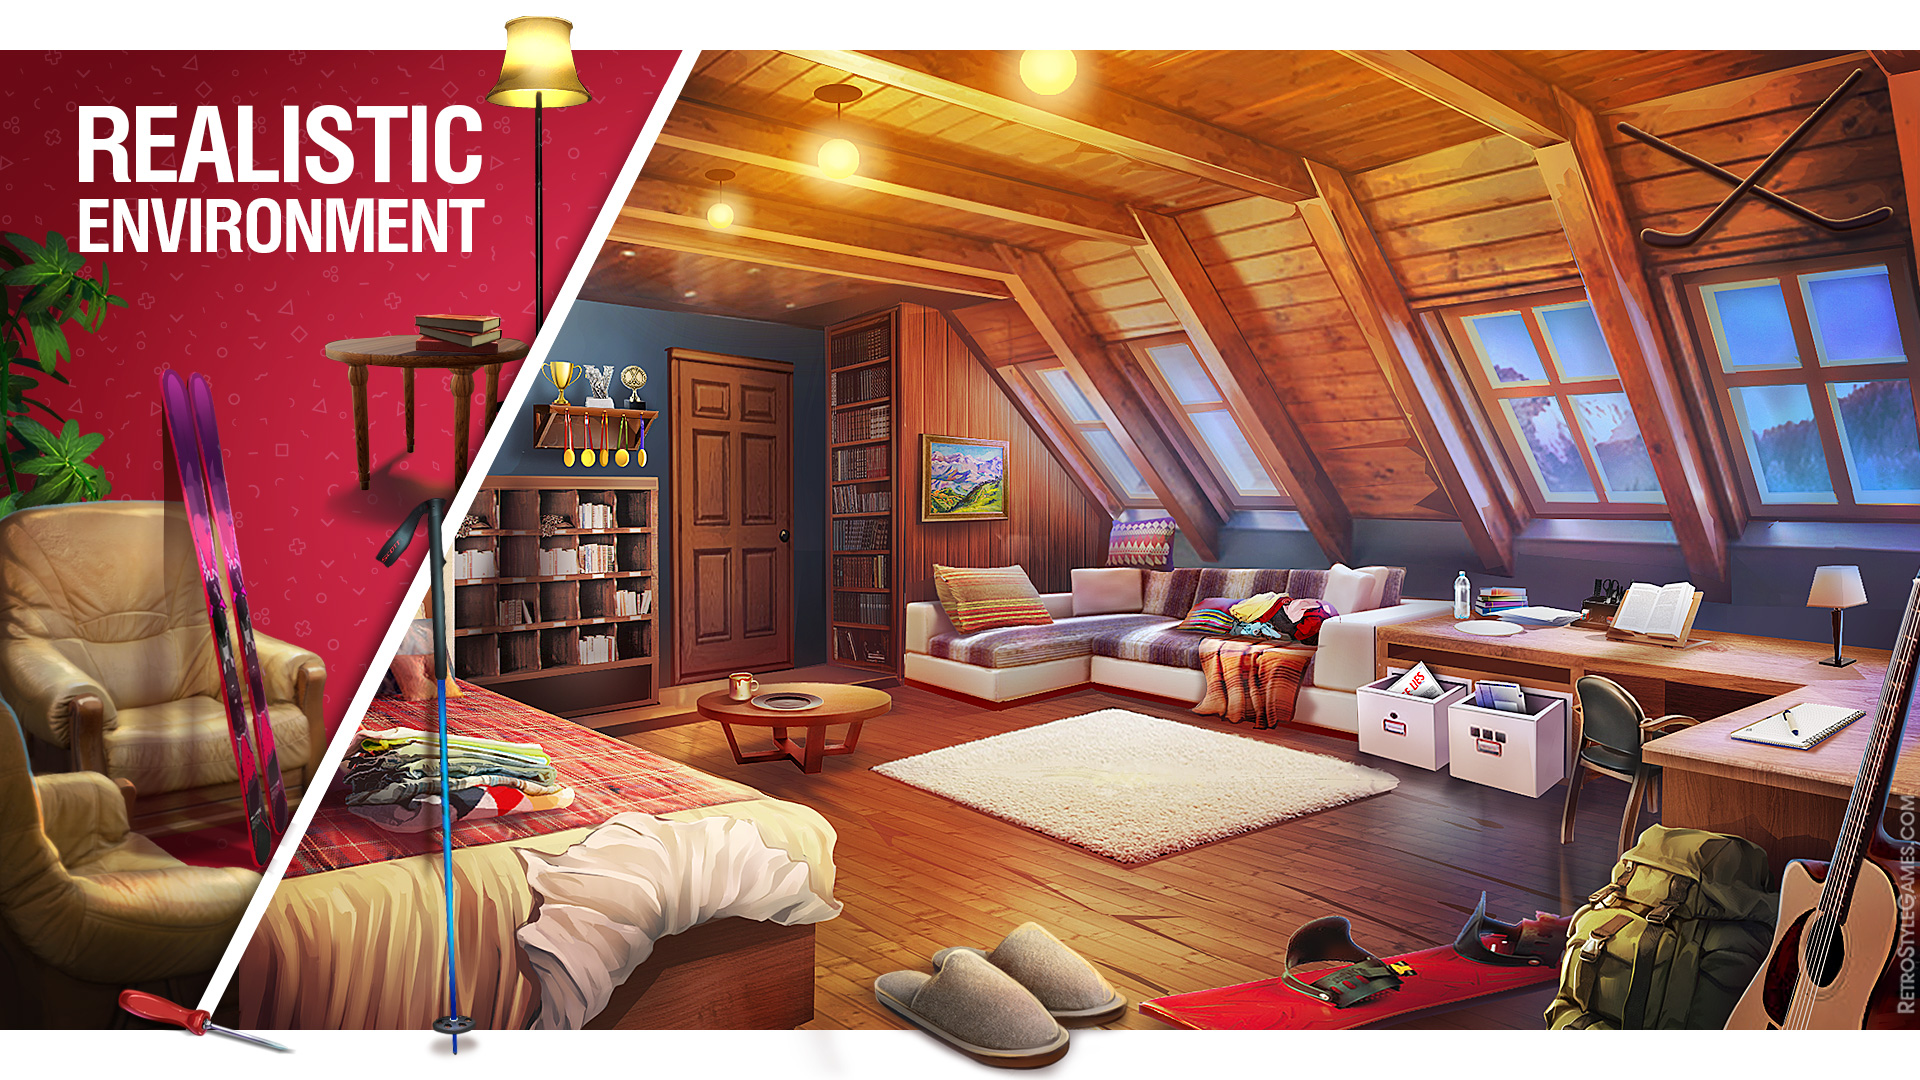 Game Background Realistic Environment Concept Art Interior